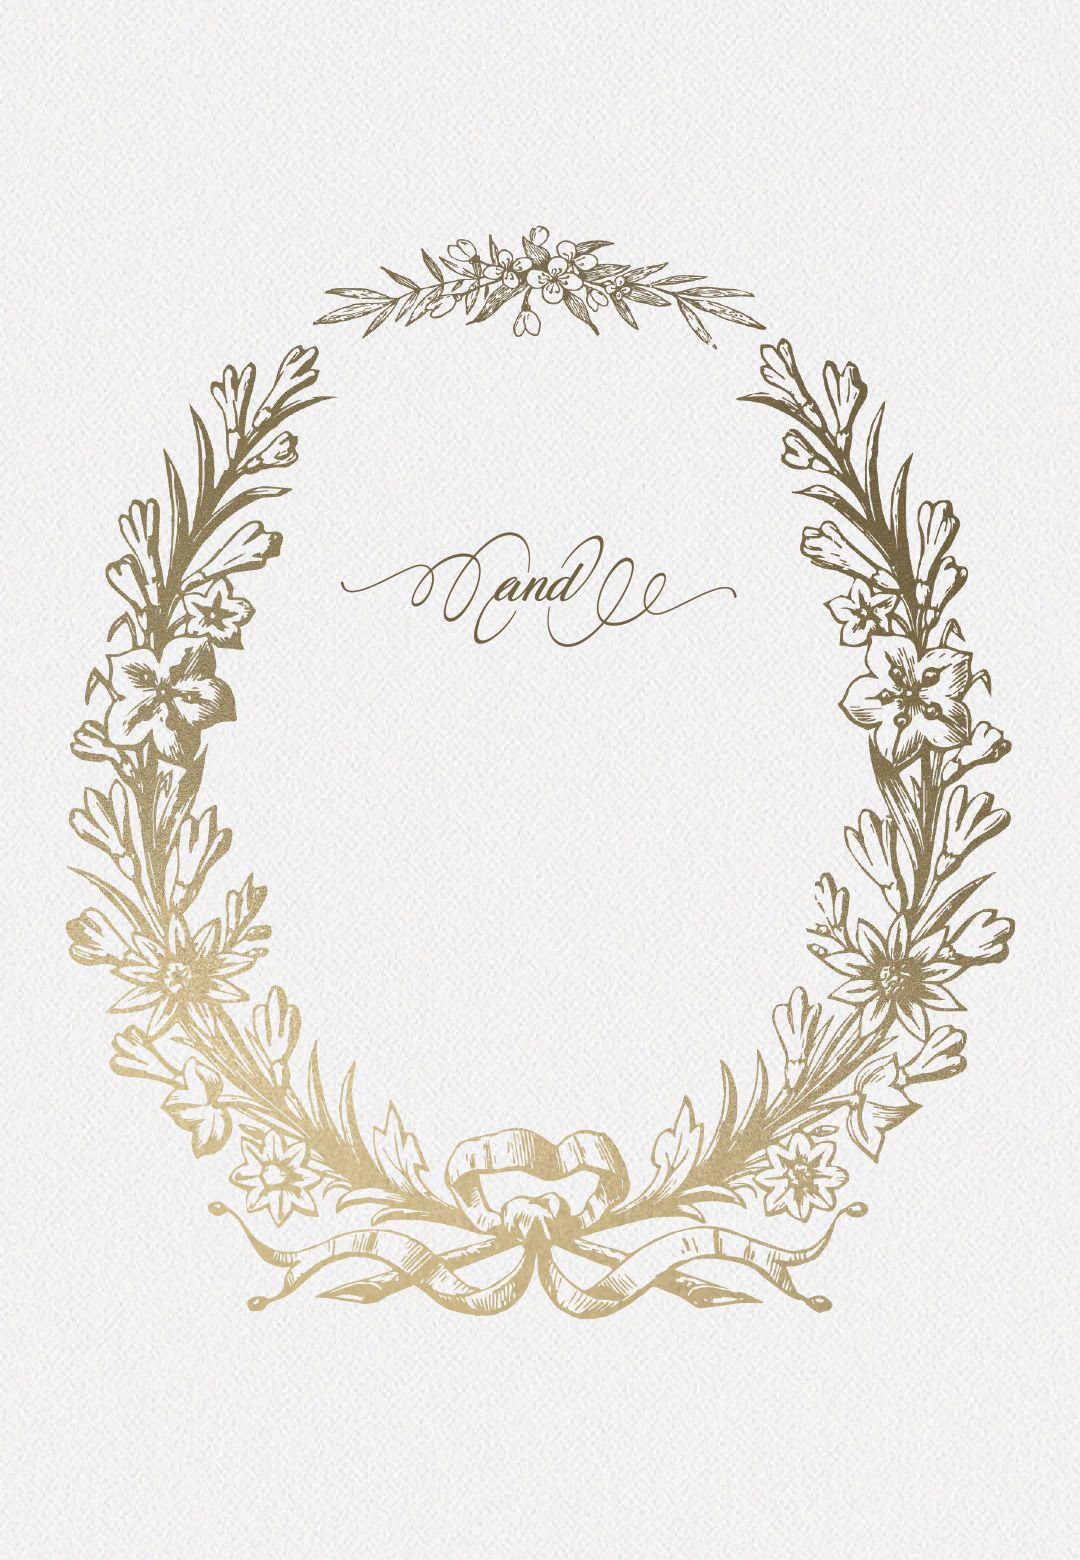 Golden Wreath Wedding Invitation Template Free Greetings